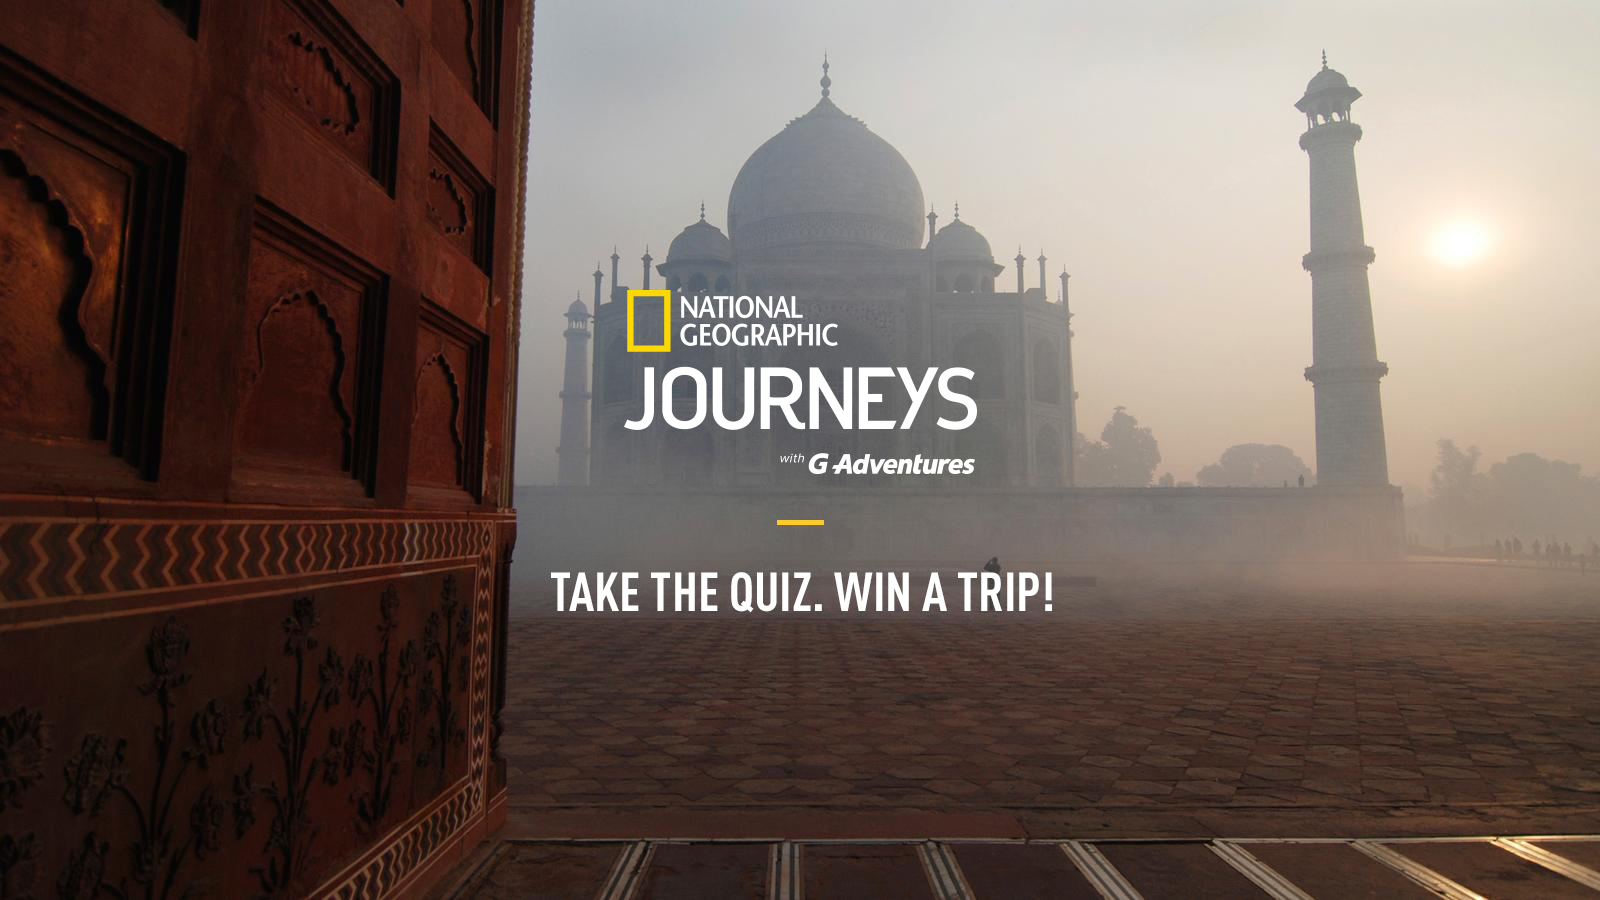 Win a trip for two from National Geographic Journeys with G Adventures!